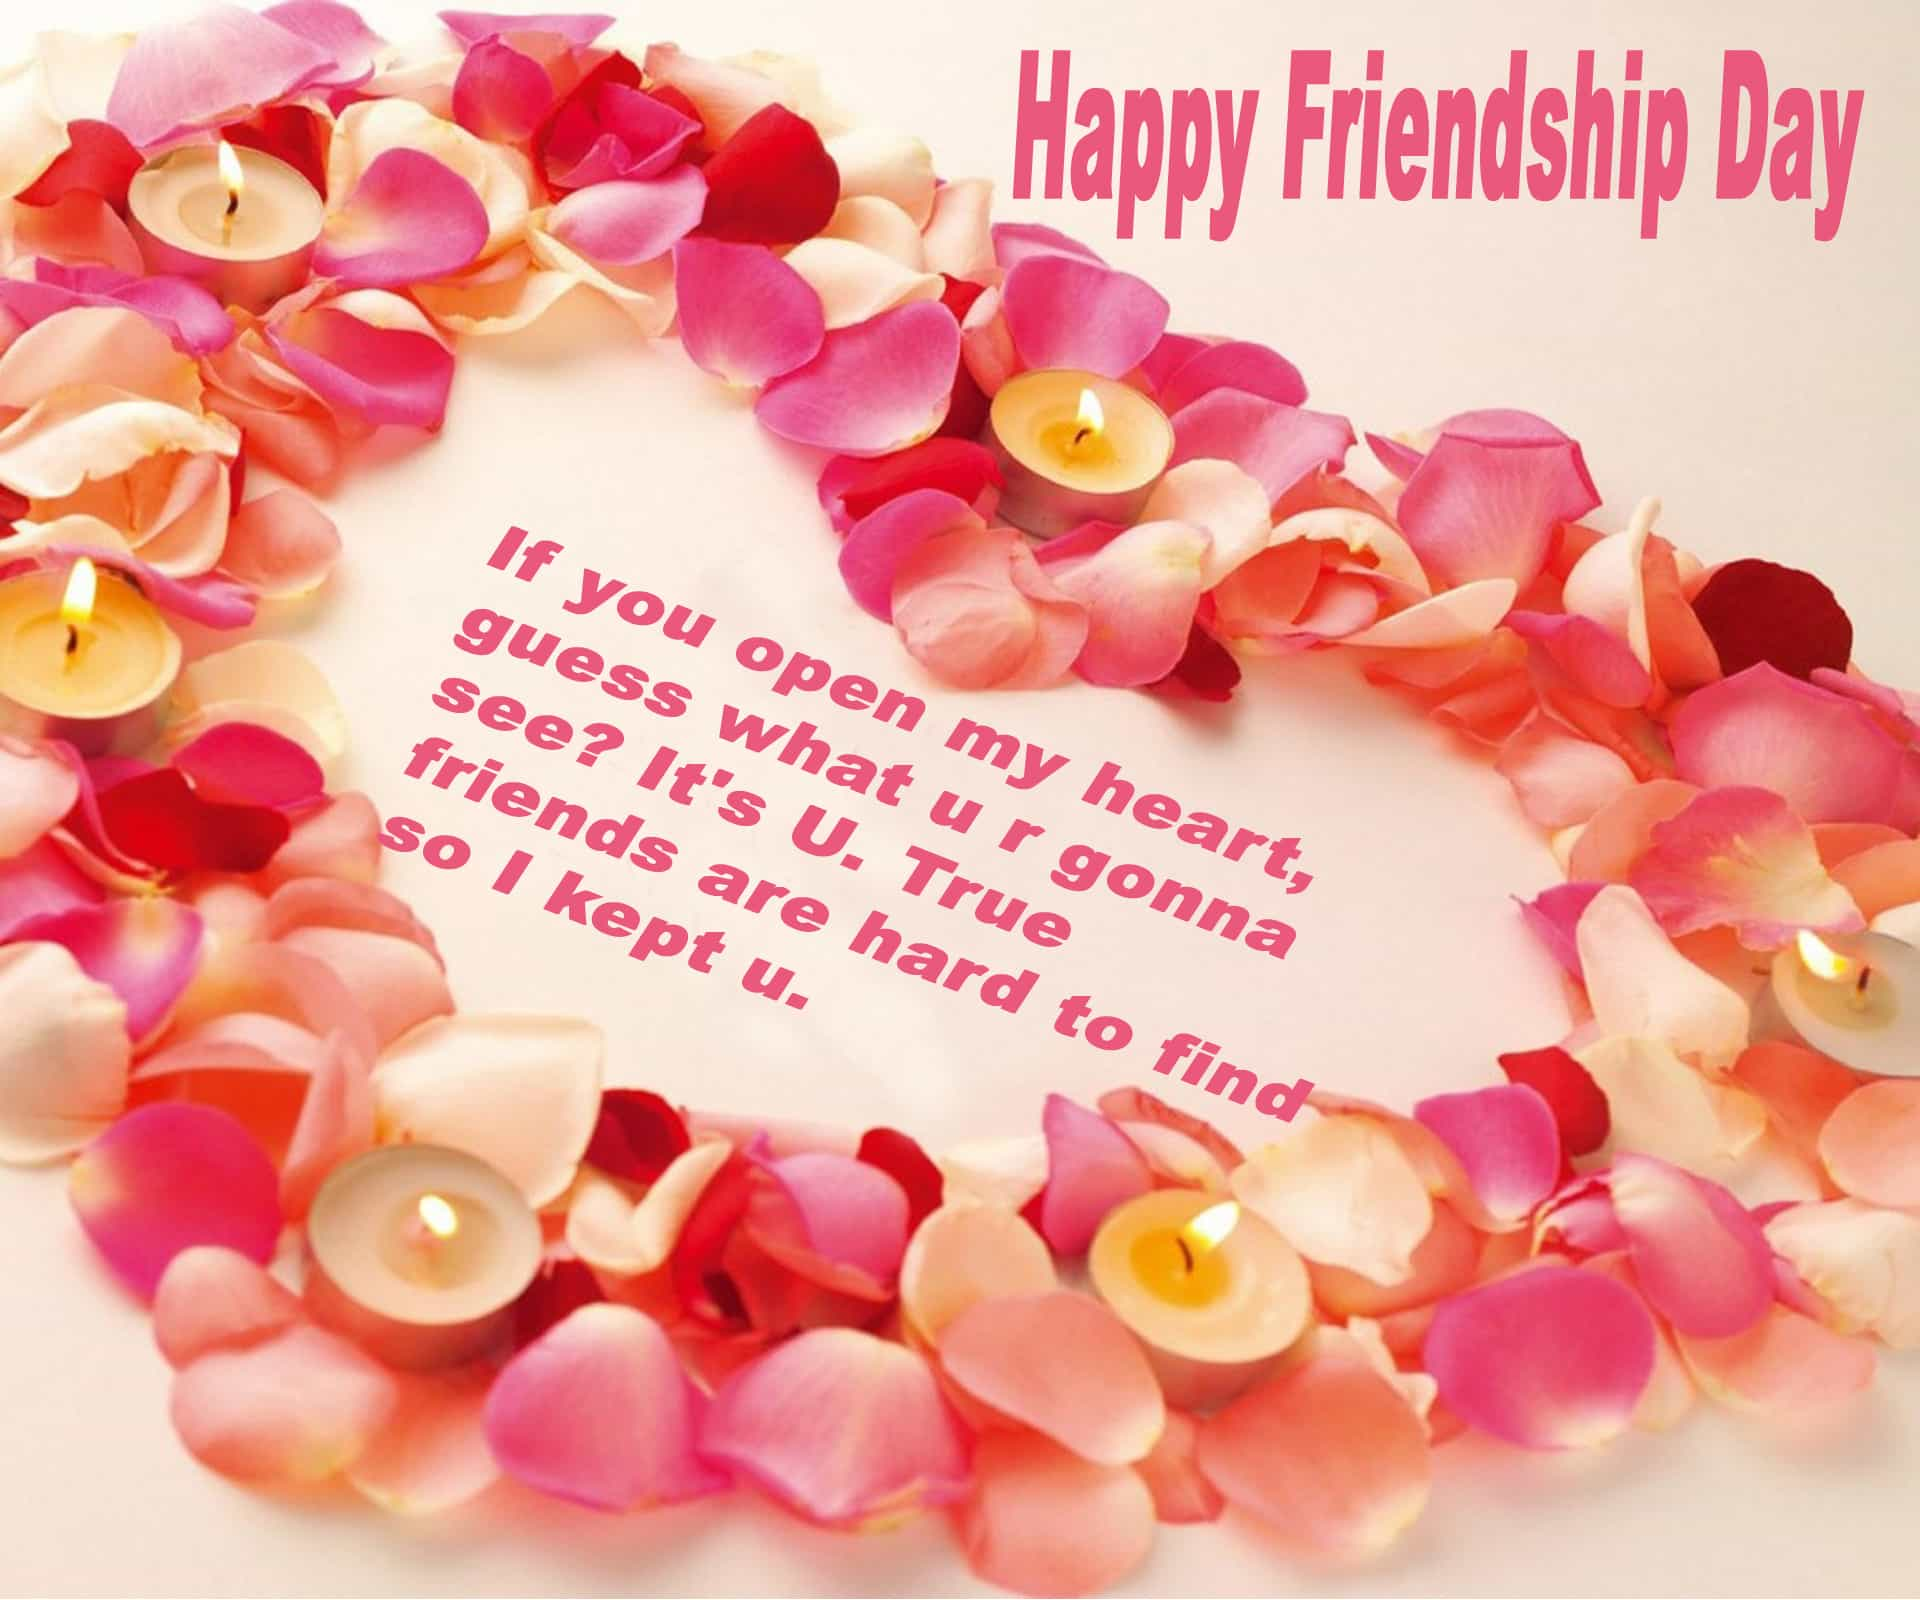 Best happy friendship day wallpaper 2017 hd download festivityhub happy friendship day wallpapers for whatsapp 2017 altavistaventures Image collections